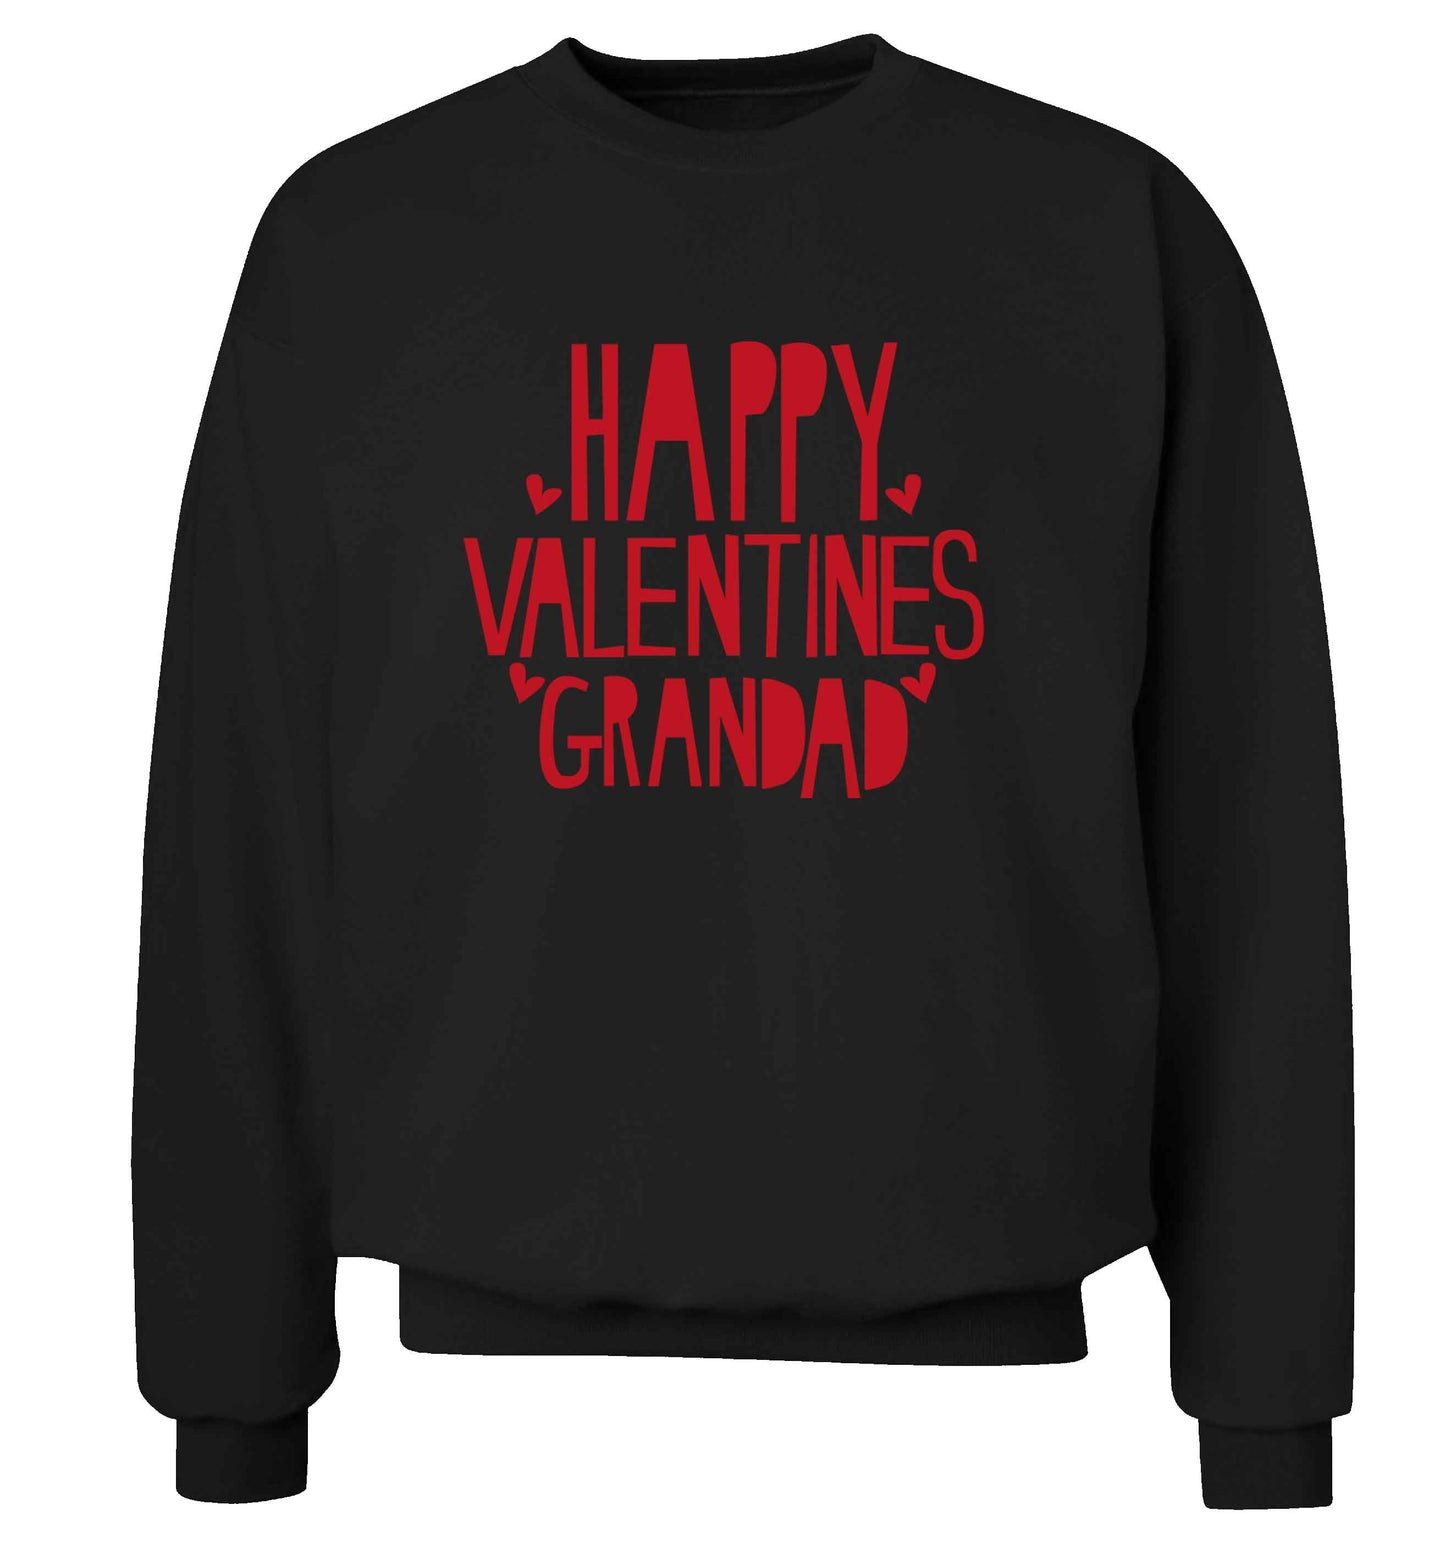 Happy valentines grandad adult's unisex black sweater 2XL